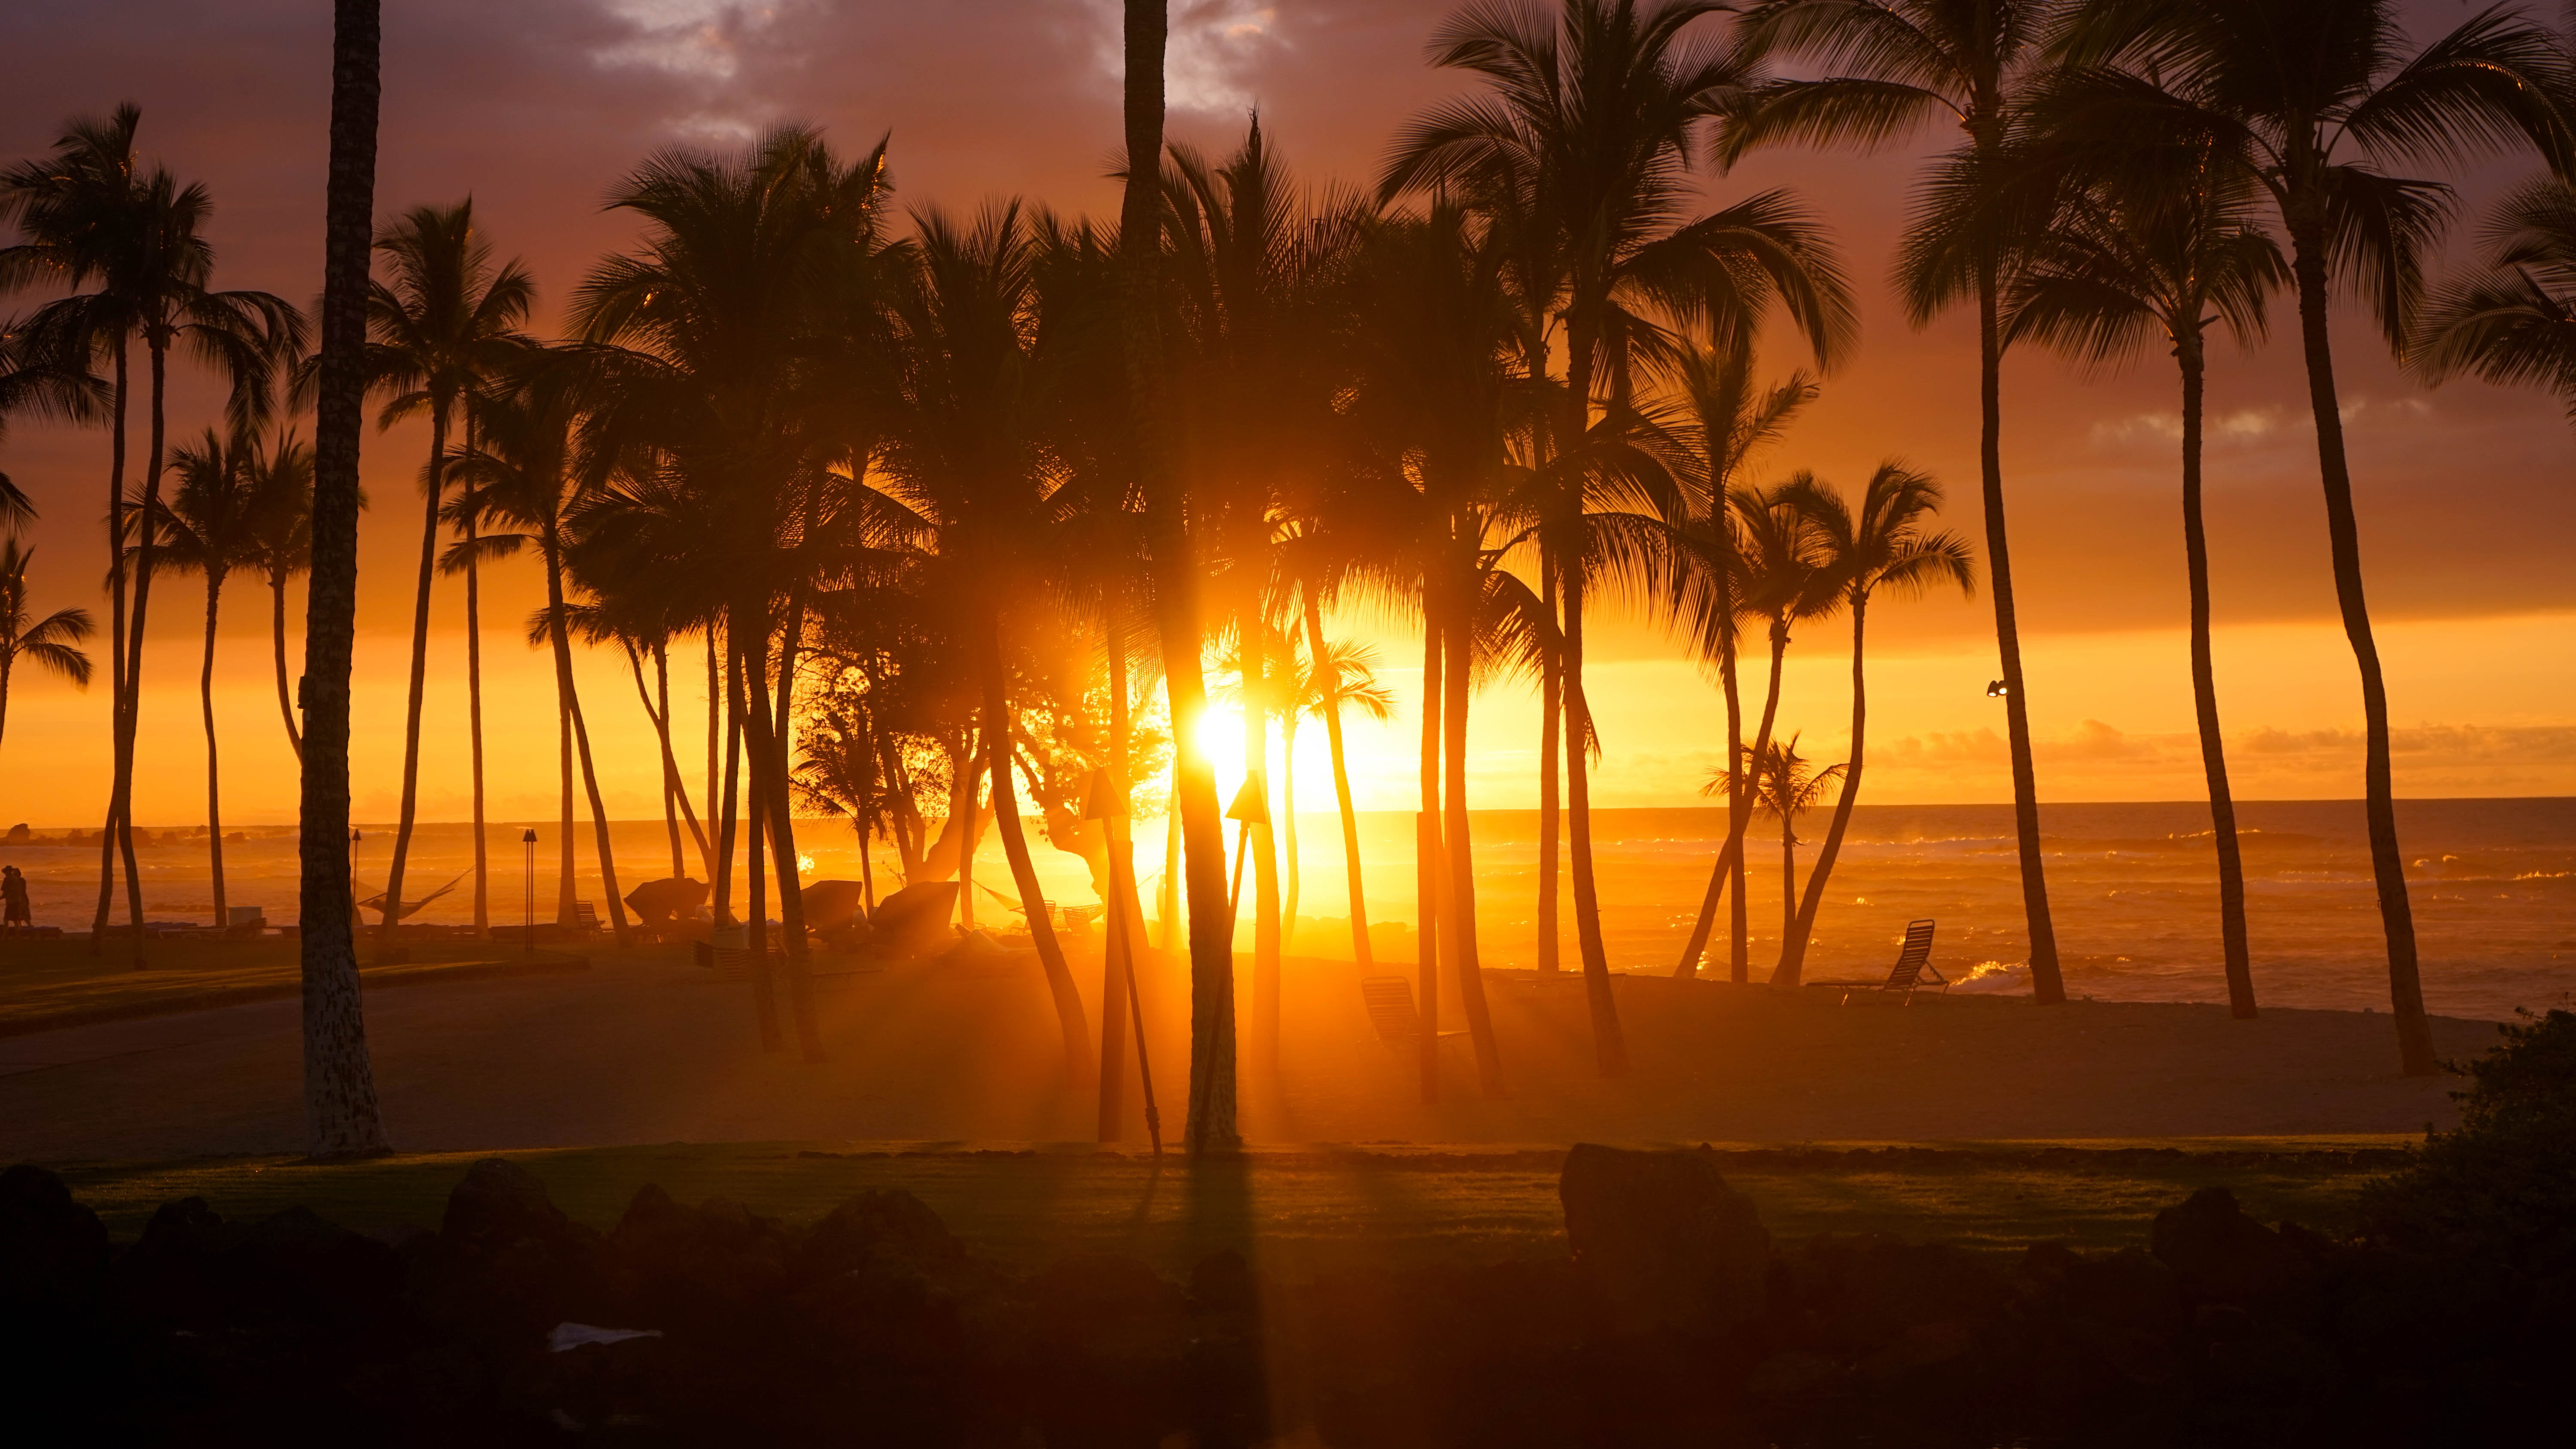 silhouette photo of palm trees during golden hour